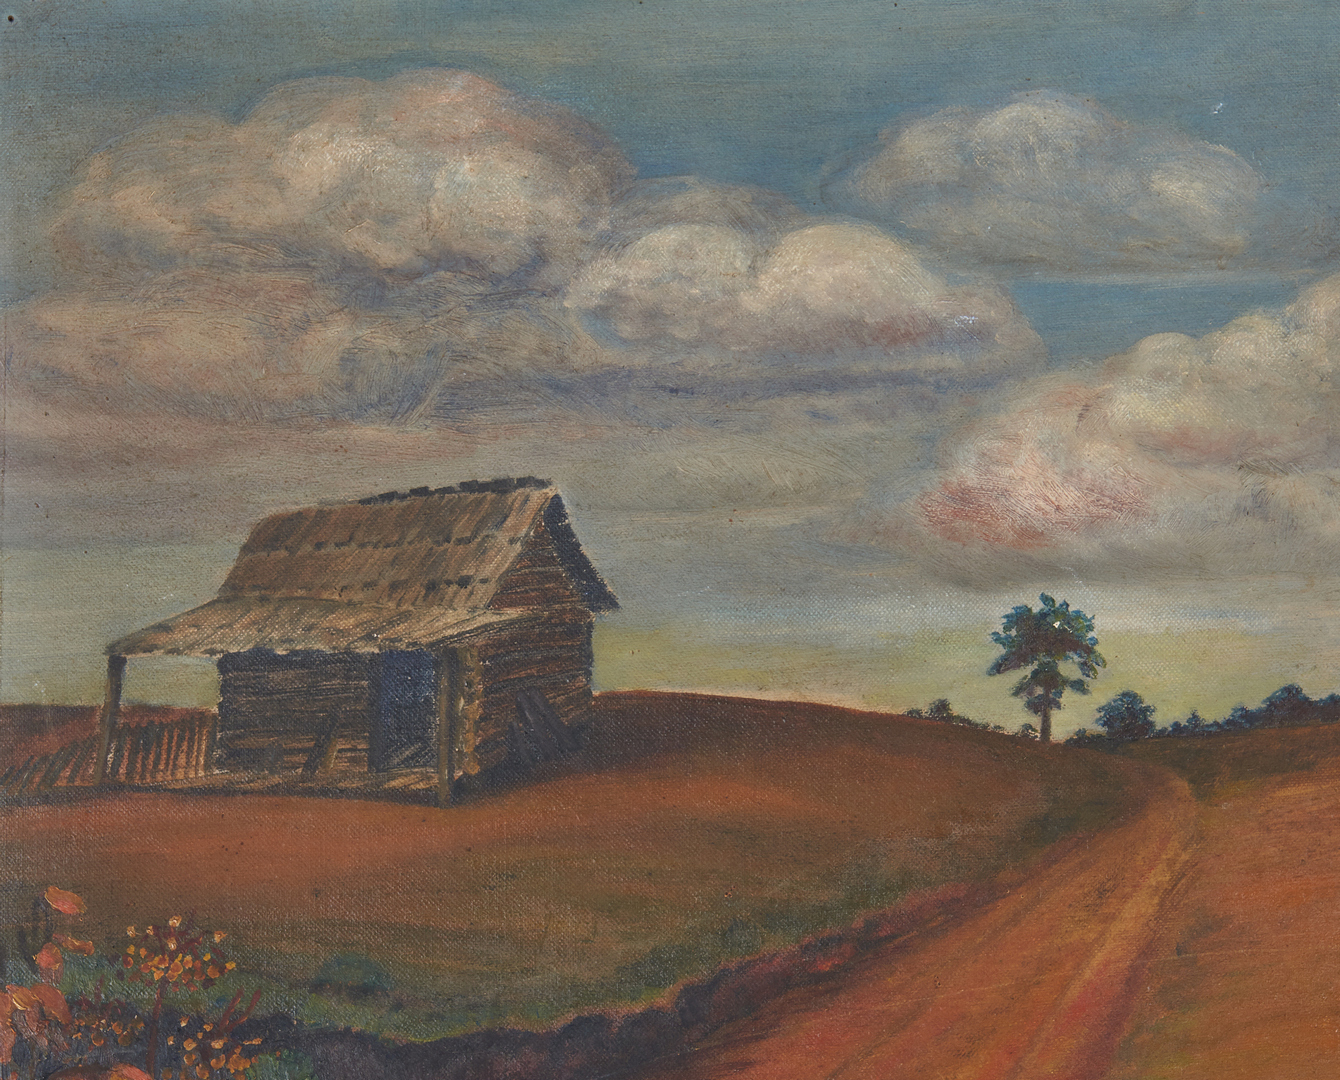 Lot 813: Southern School landscape with Woman and Cabin